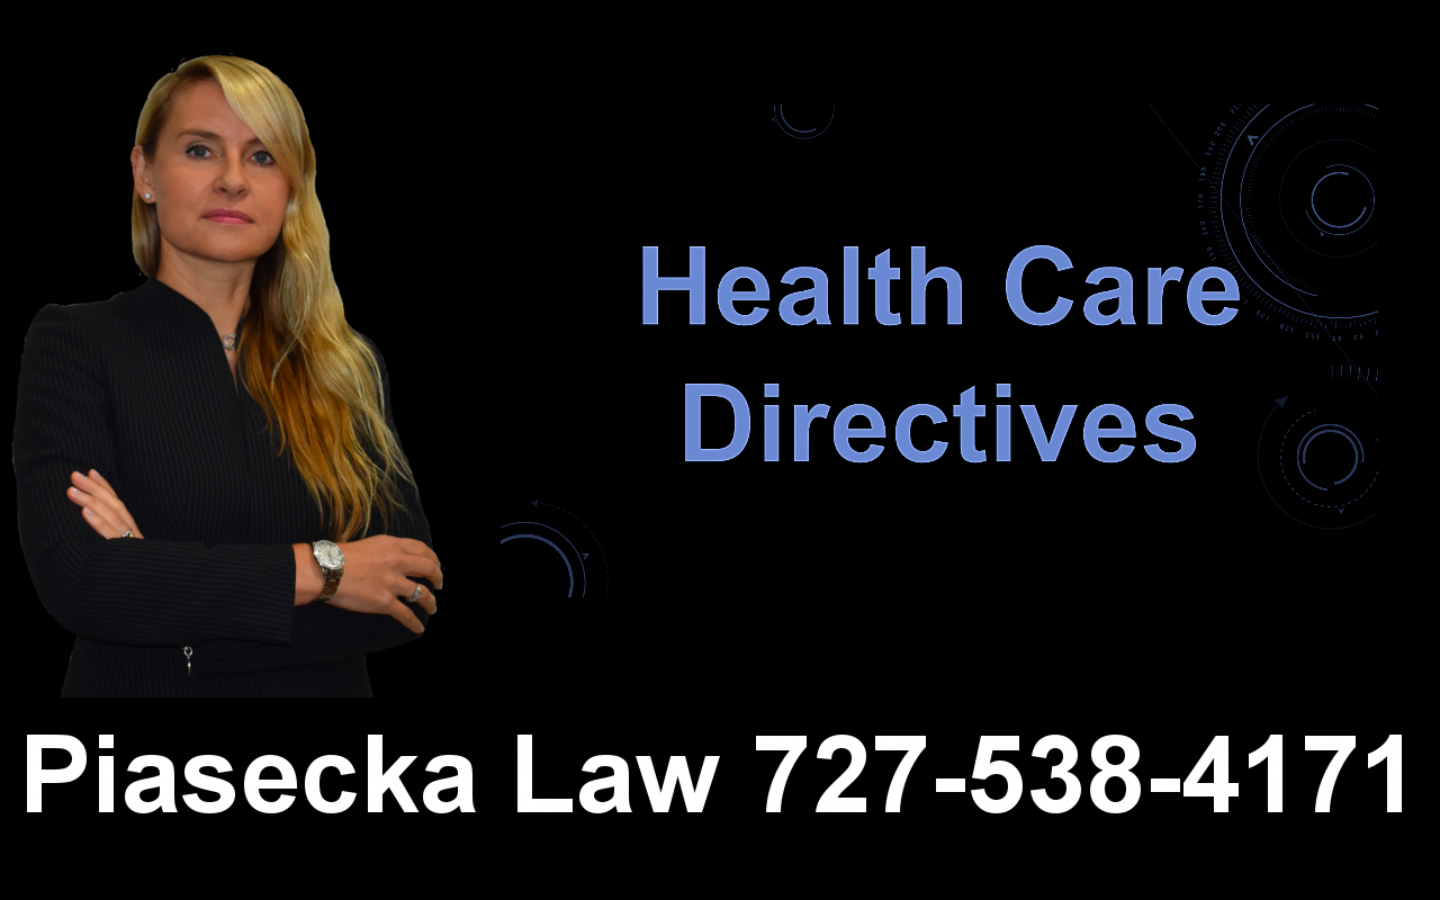 Health Care Directives, Clearwater, Florida, Lawyer, Attorney, Agnieszka, Aga, Piasecka